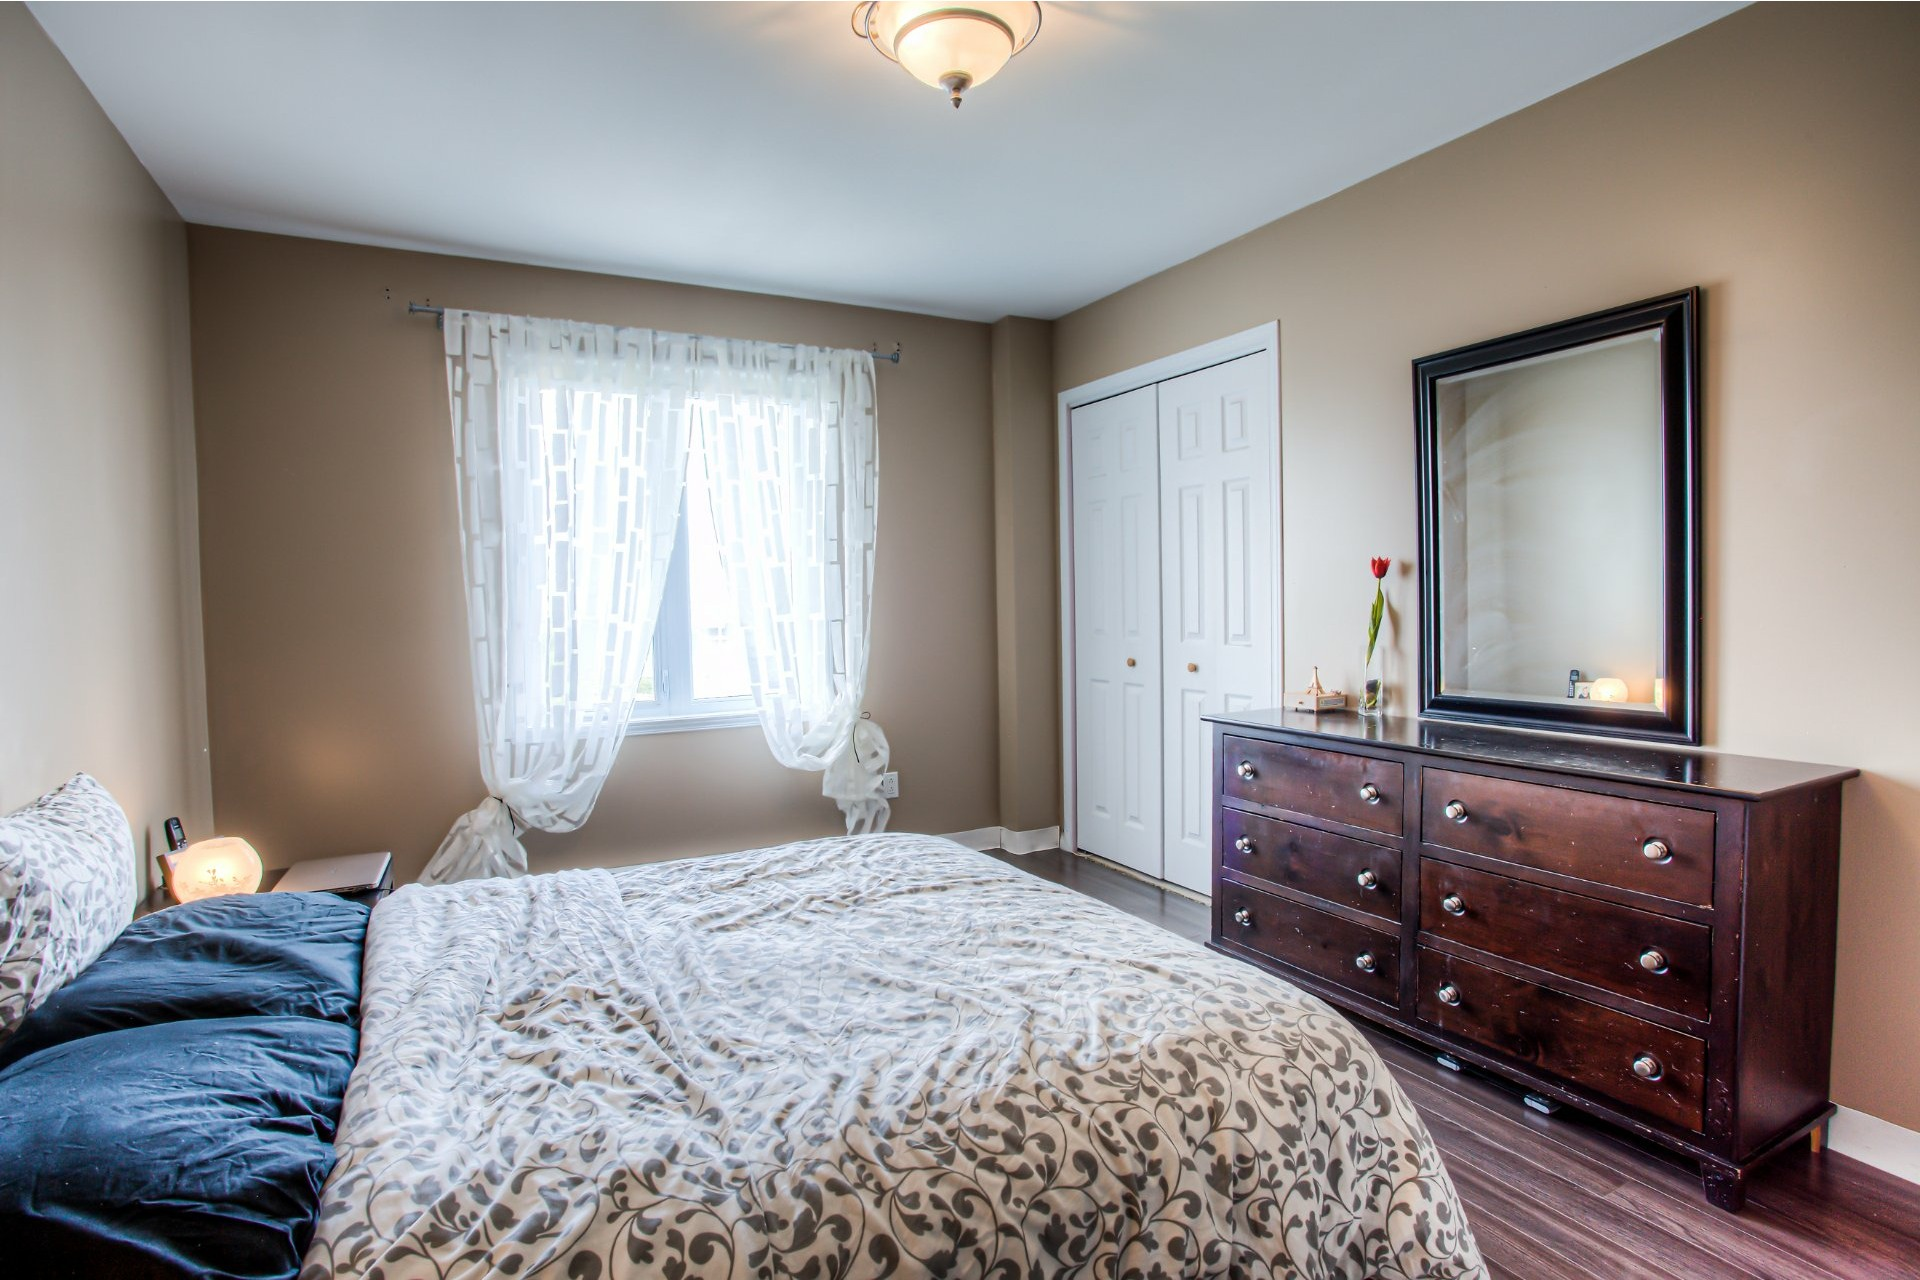 image 12 - House For sale Vaudreuil-Dorion - 7 rooms